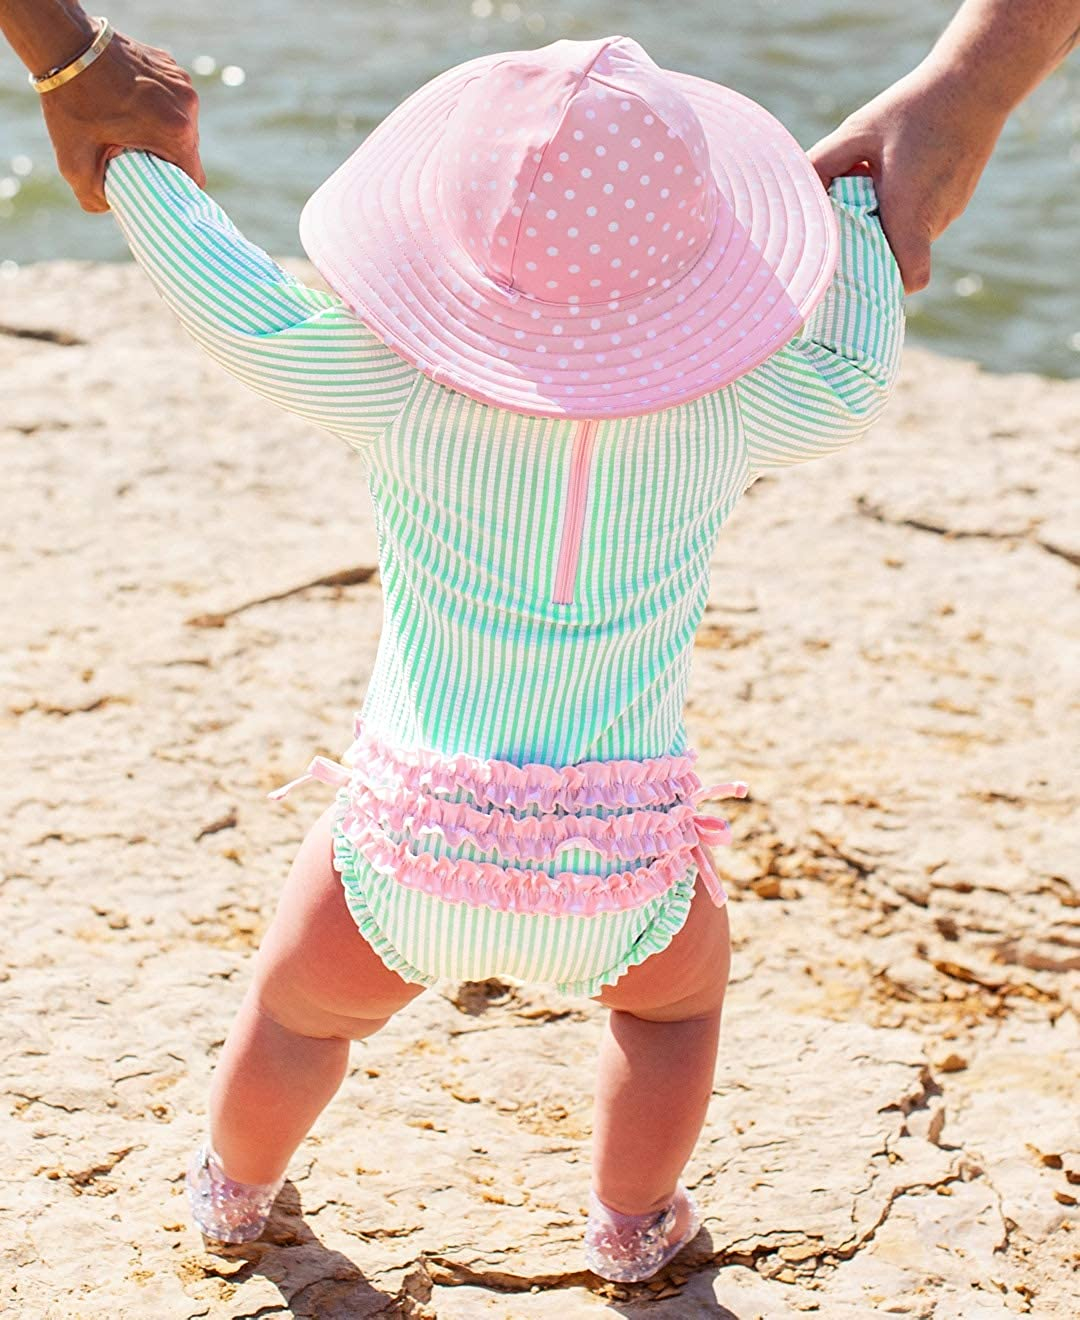 Sun Protection RuffleButts Baby//Toddler Girls Long Sleeve One Piece Swimsuit with UPF 50